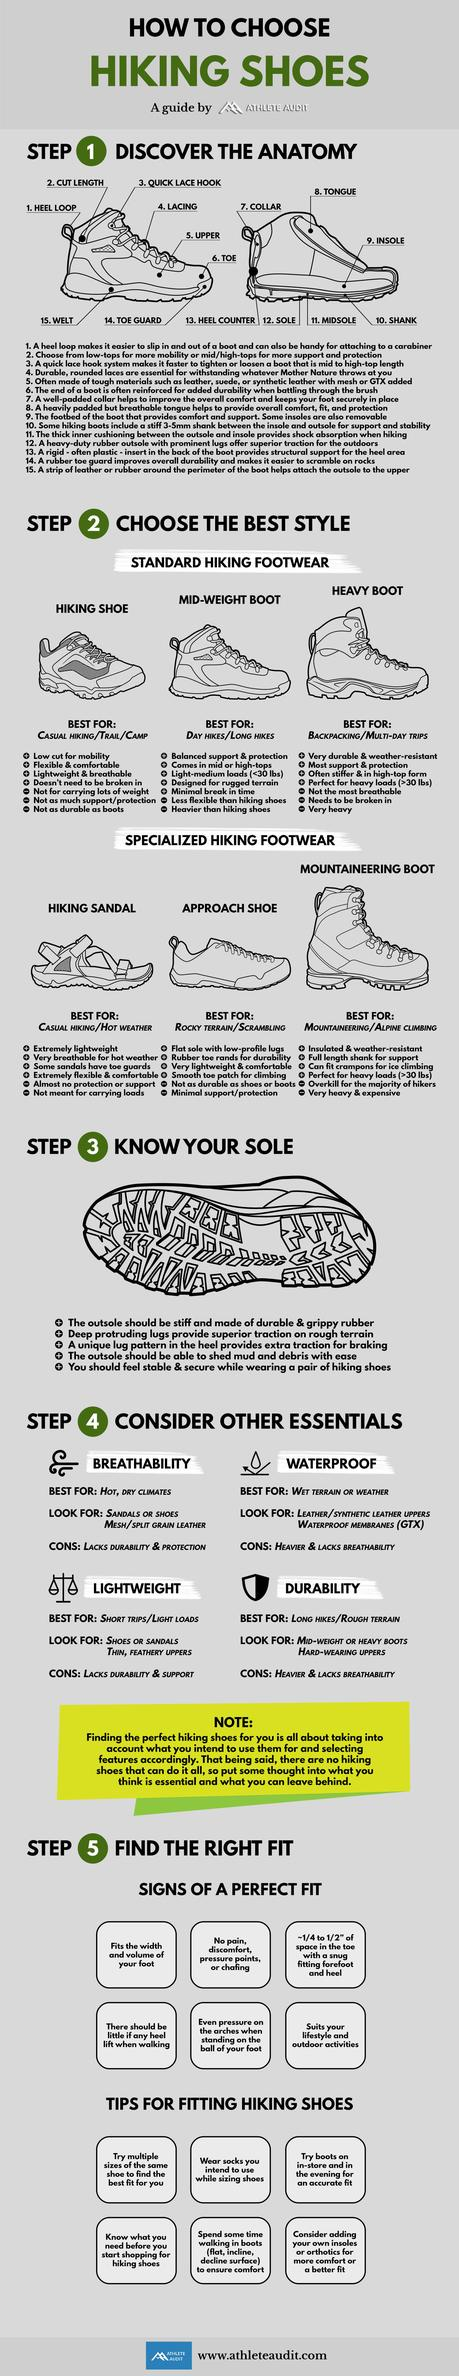 How to Choose Hiking Shoes - Athlete Audit